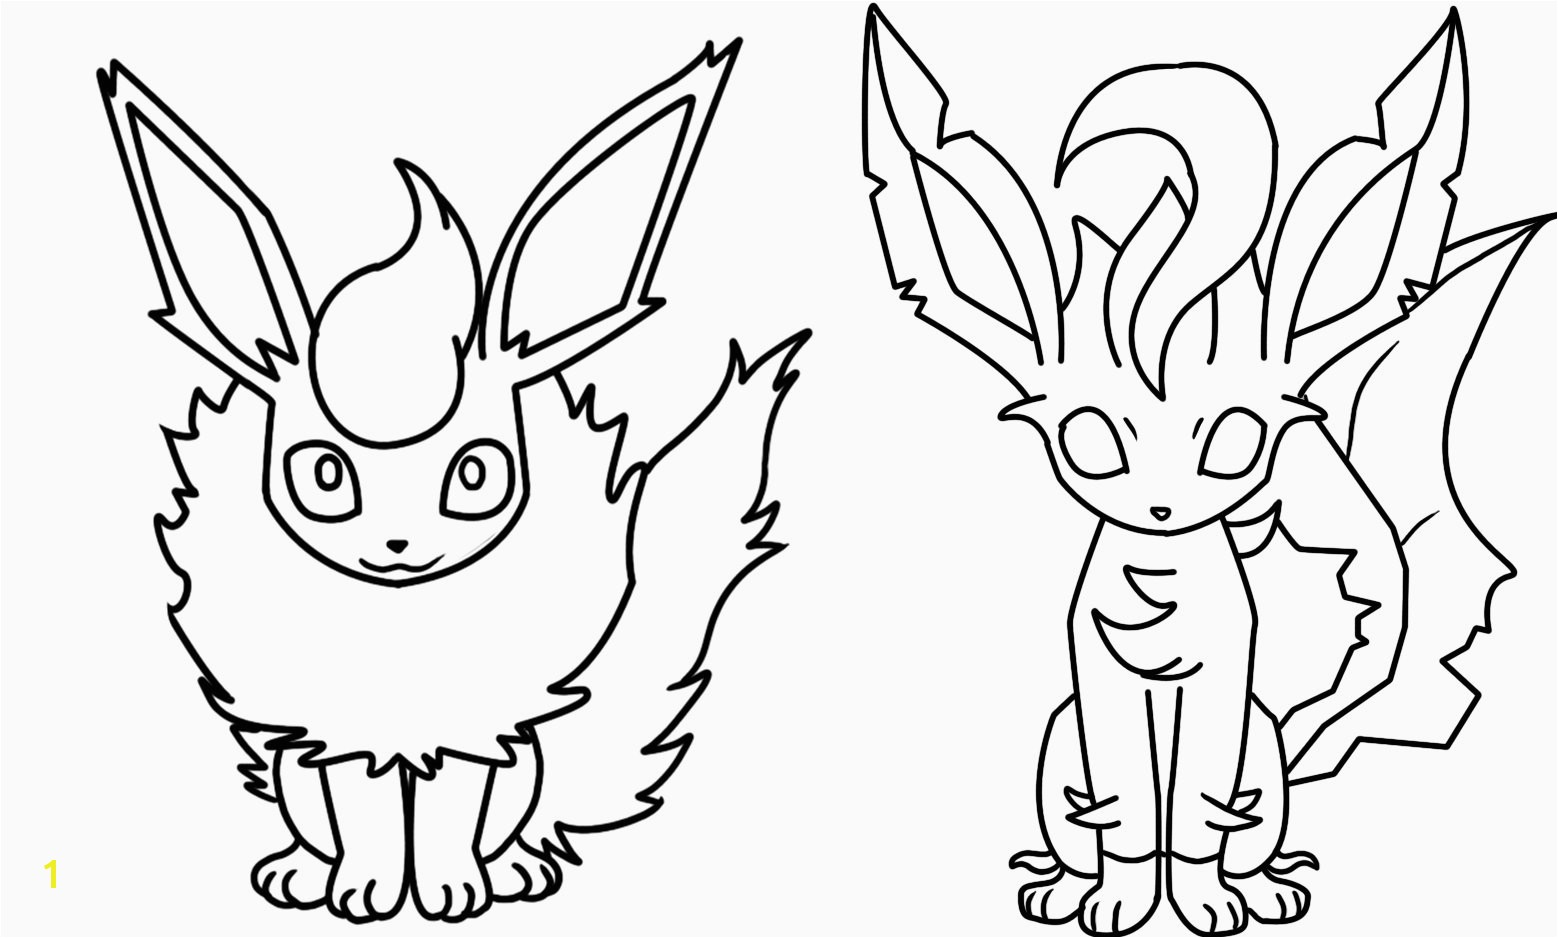 Vaporeon Coloring Pages Inspirational Fantastic Flareon Pokemon Coloring Page Frieze Coloring Page Ideas